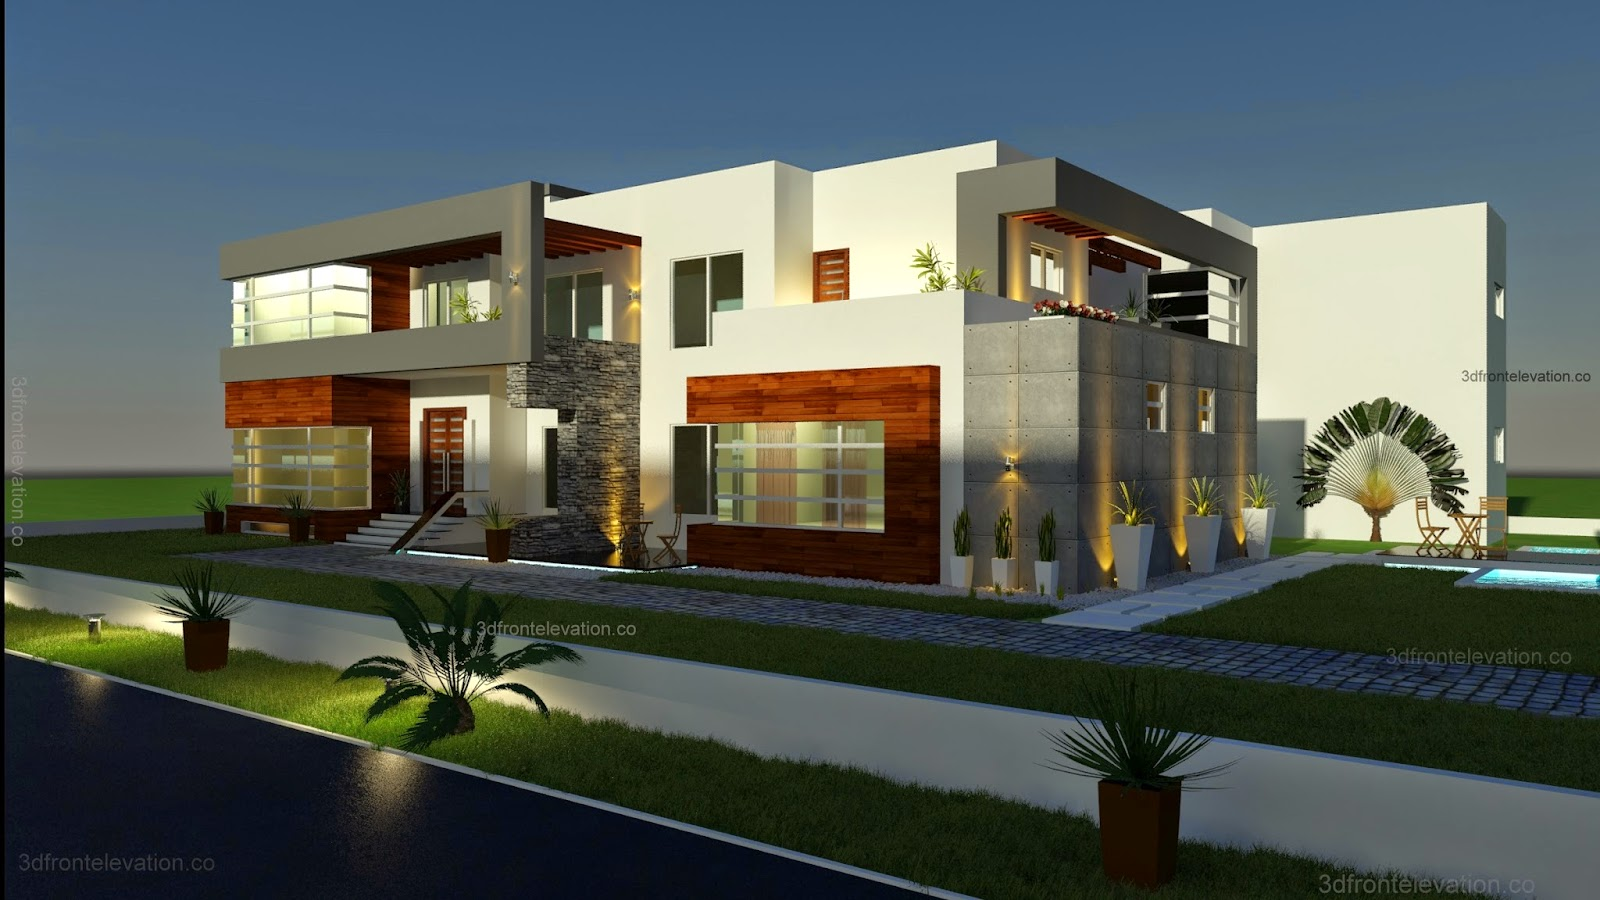 House Plans Suppliers and Manufacturers